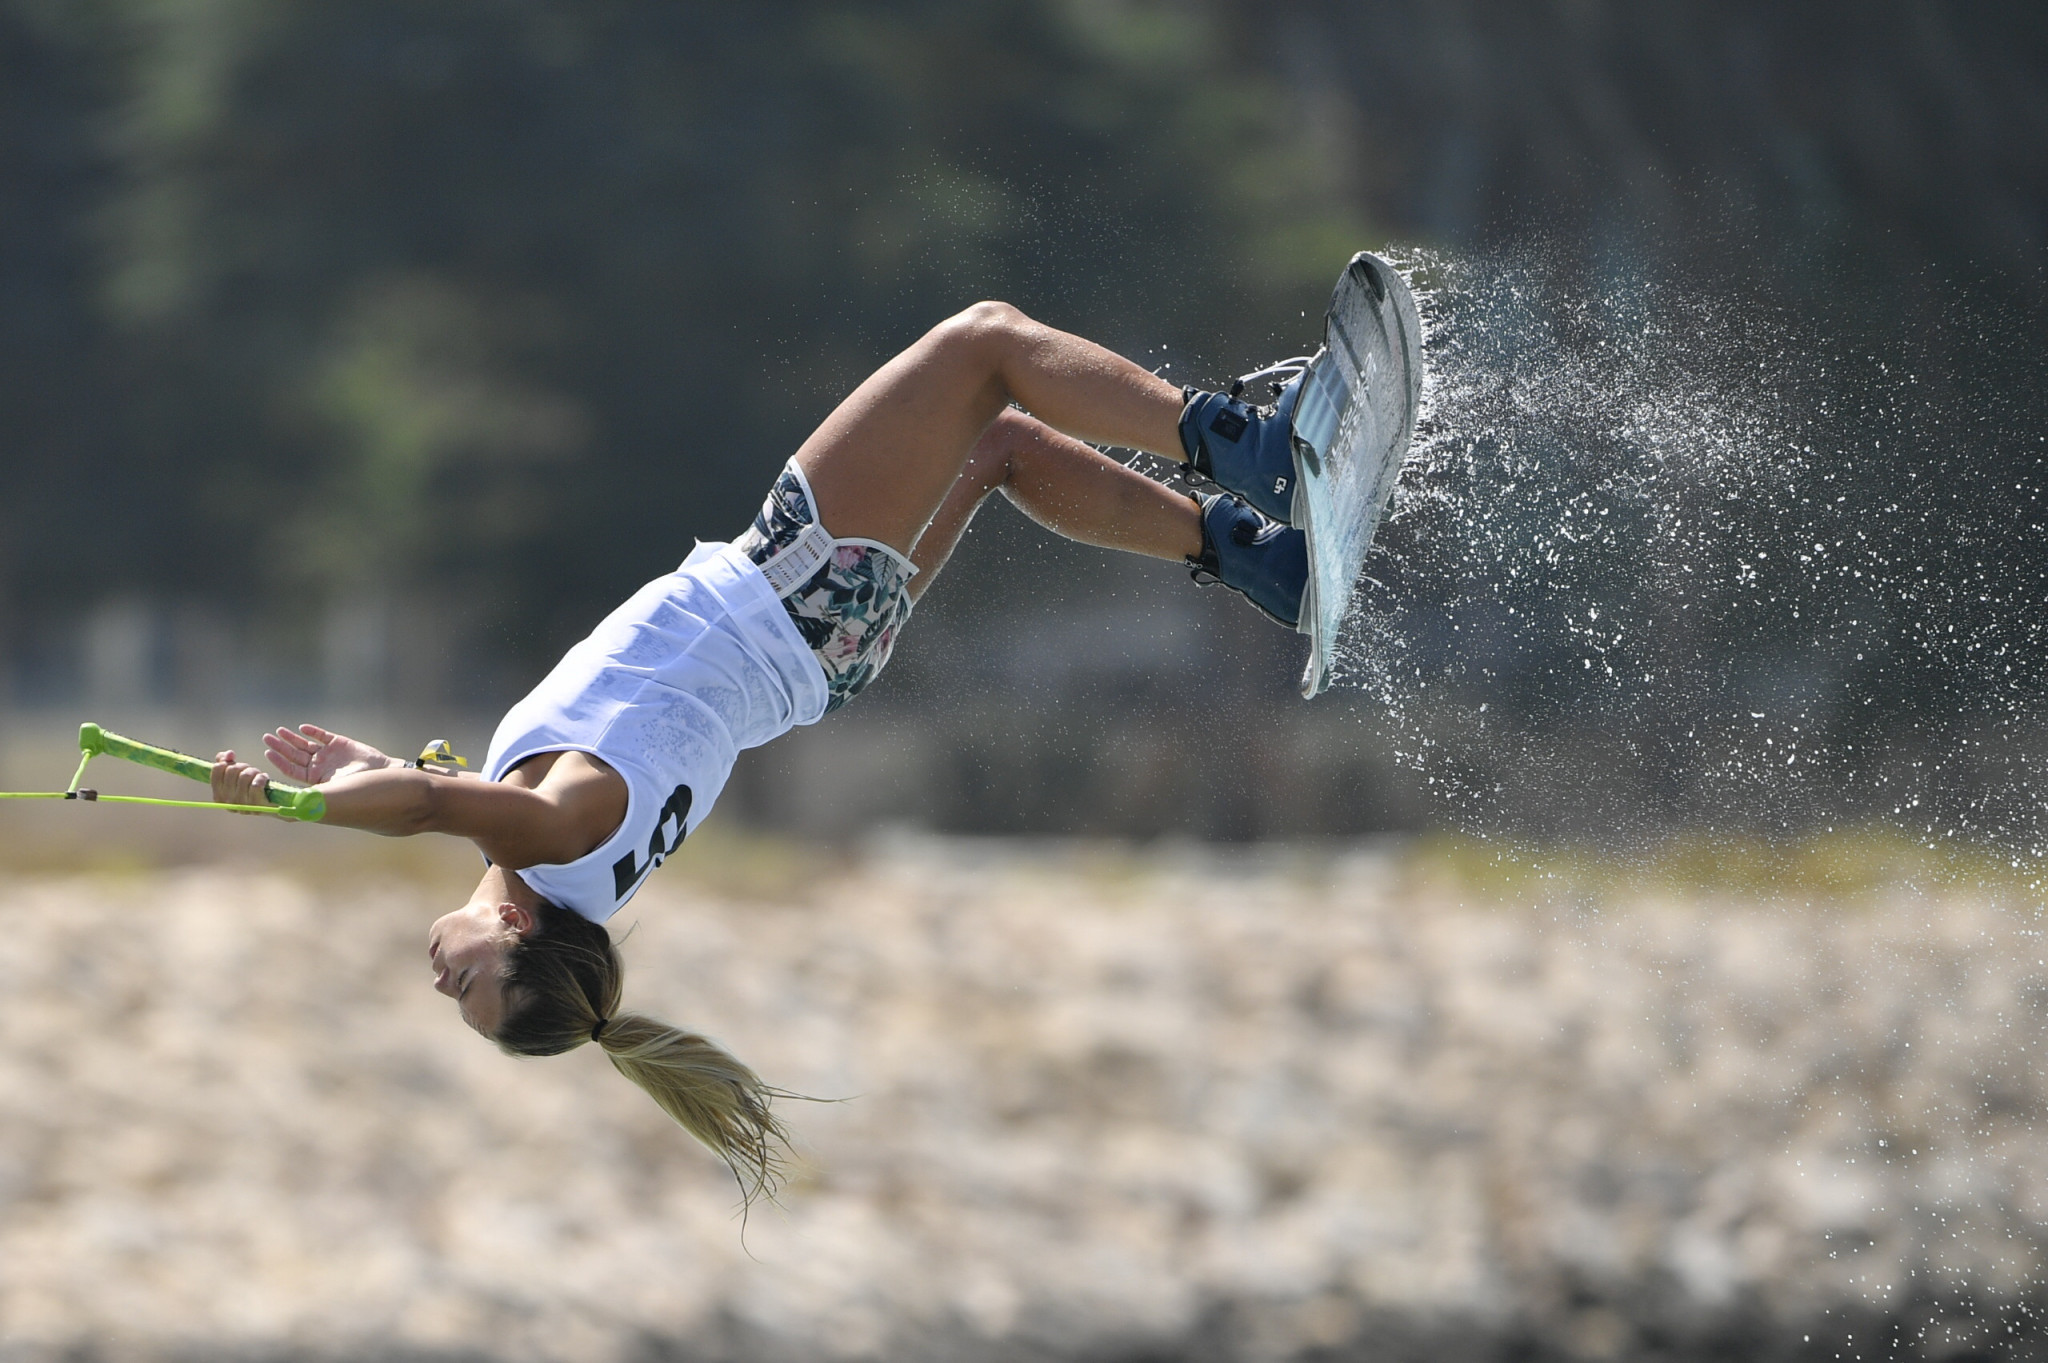 Sanne Meijer shows off her tricks en-route to women's wakeboard gold ©ANOC